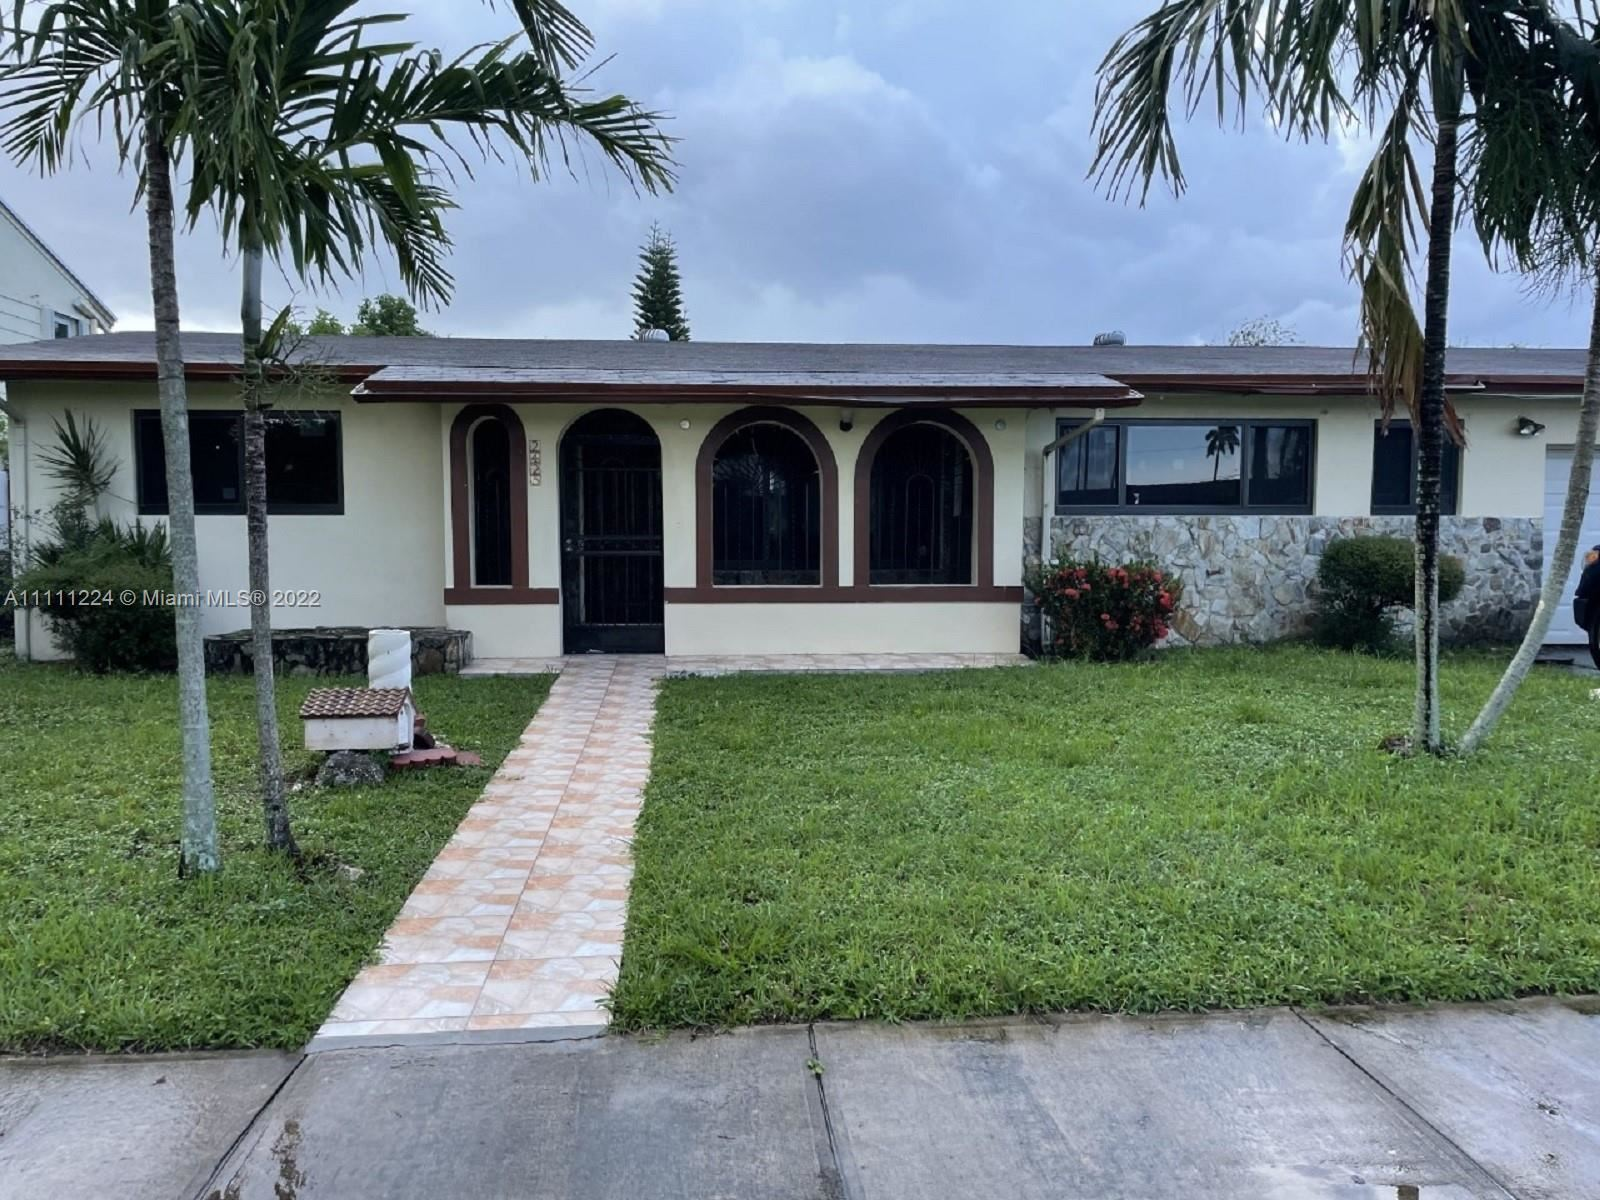 2425 NW 132nd St, Miami, FL 33167 - #: A11111224